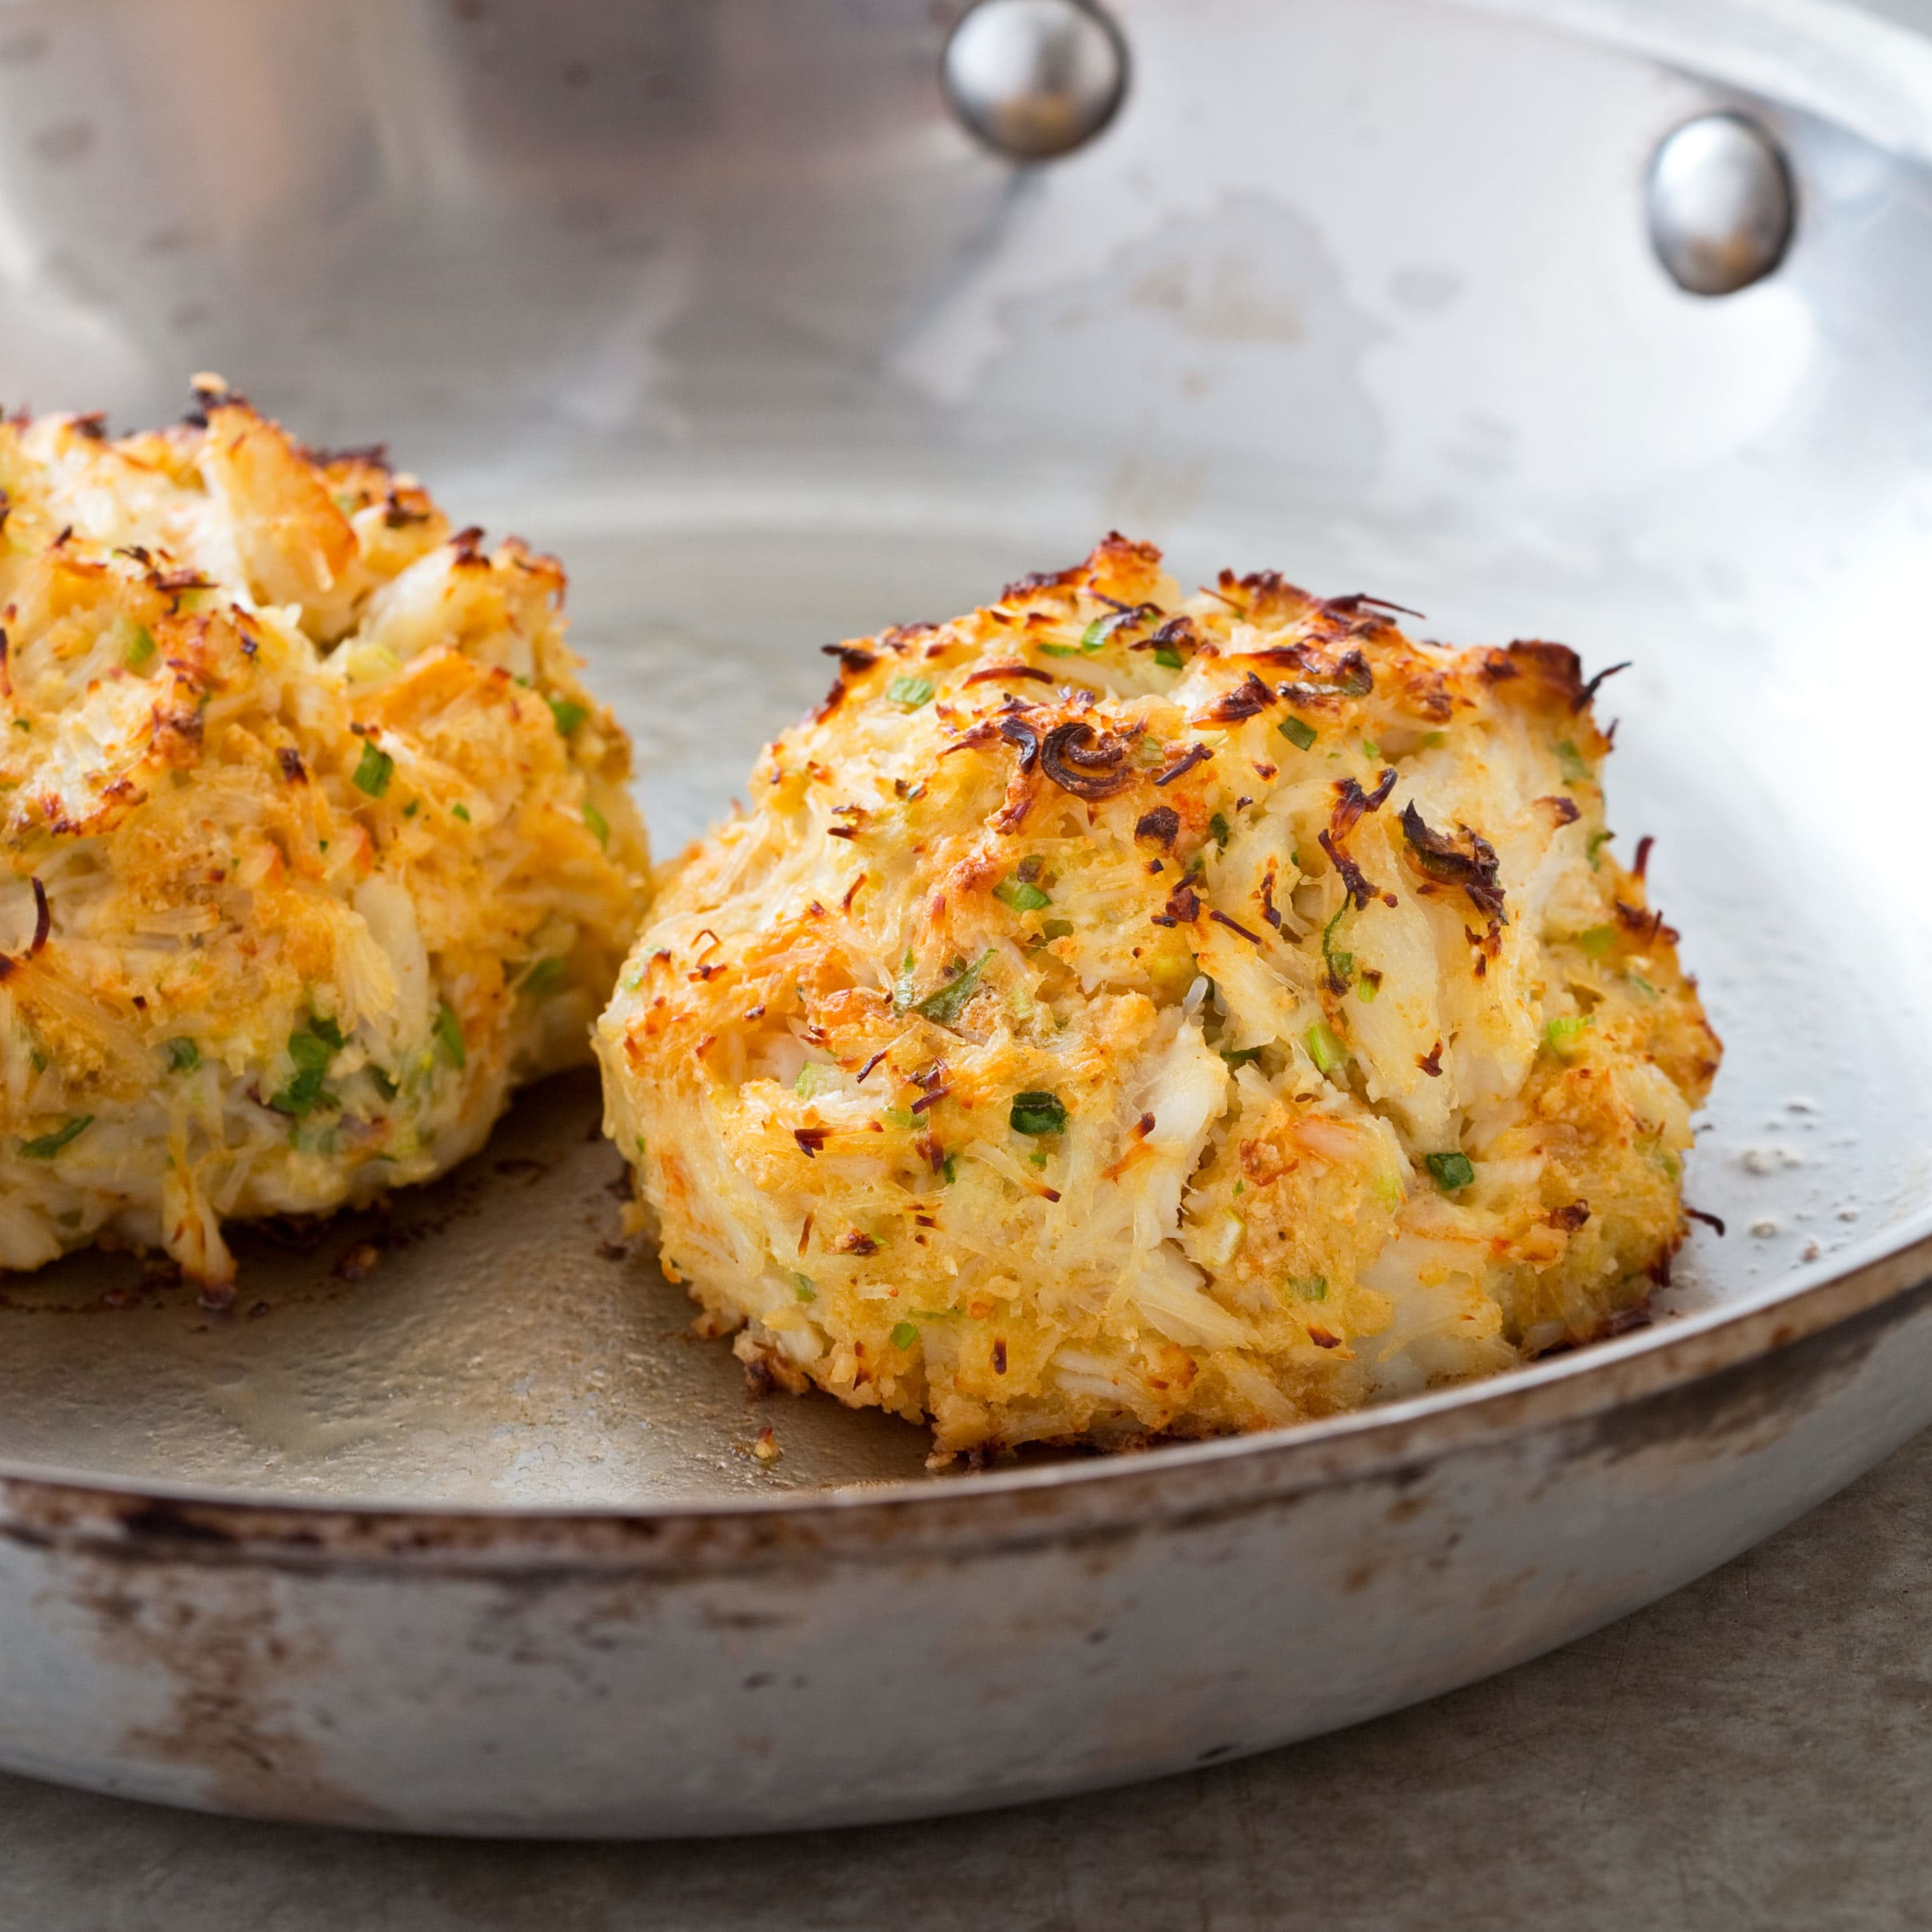 Maryland Crab Cakes Pan Fried Crab Cakes With Old Bay